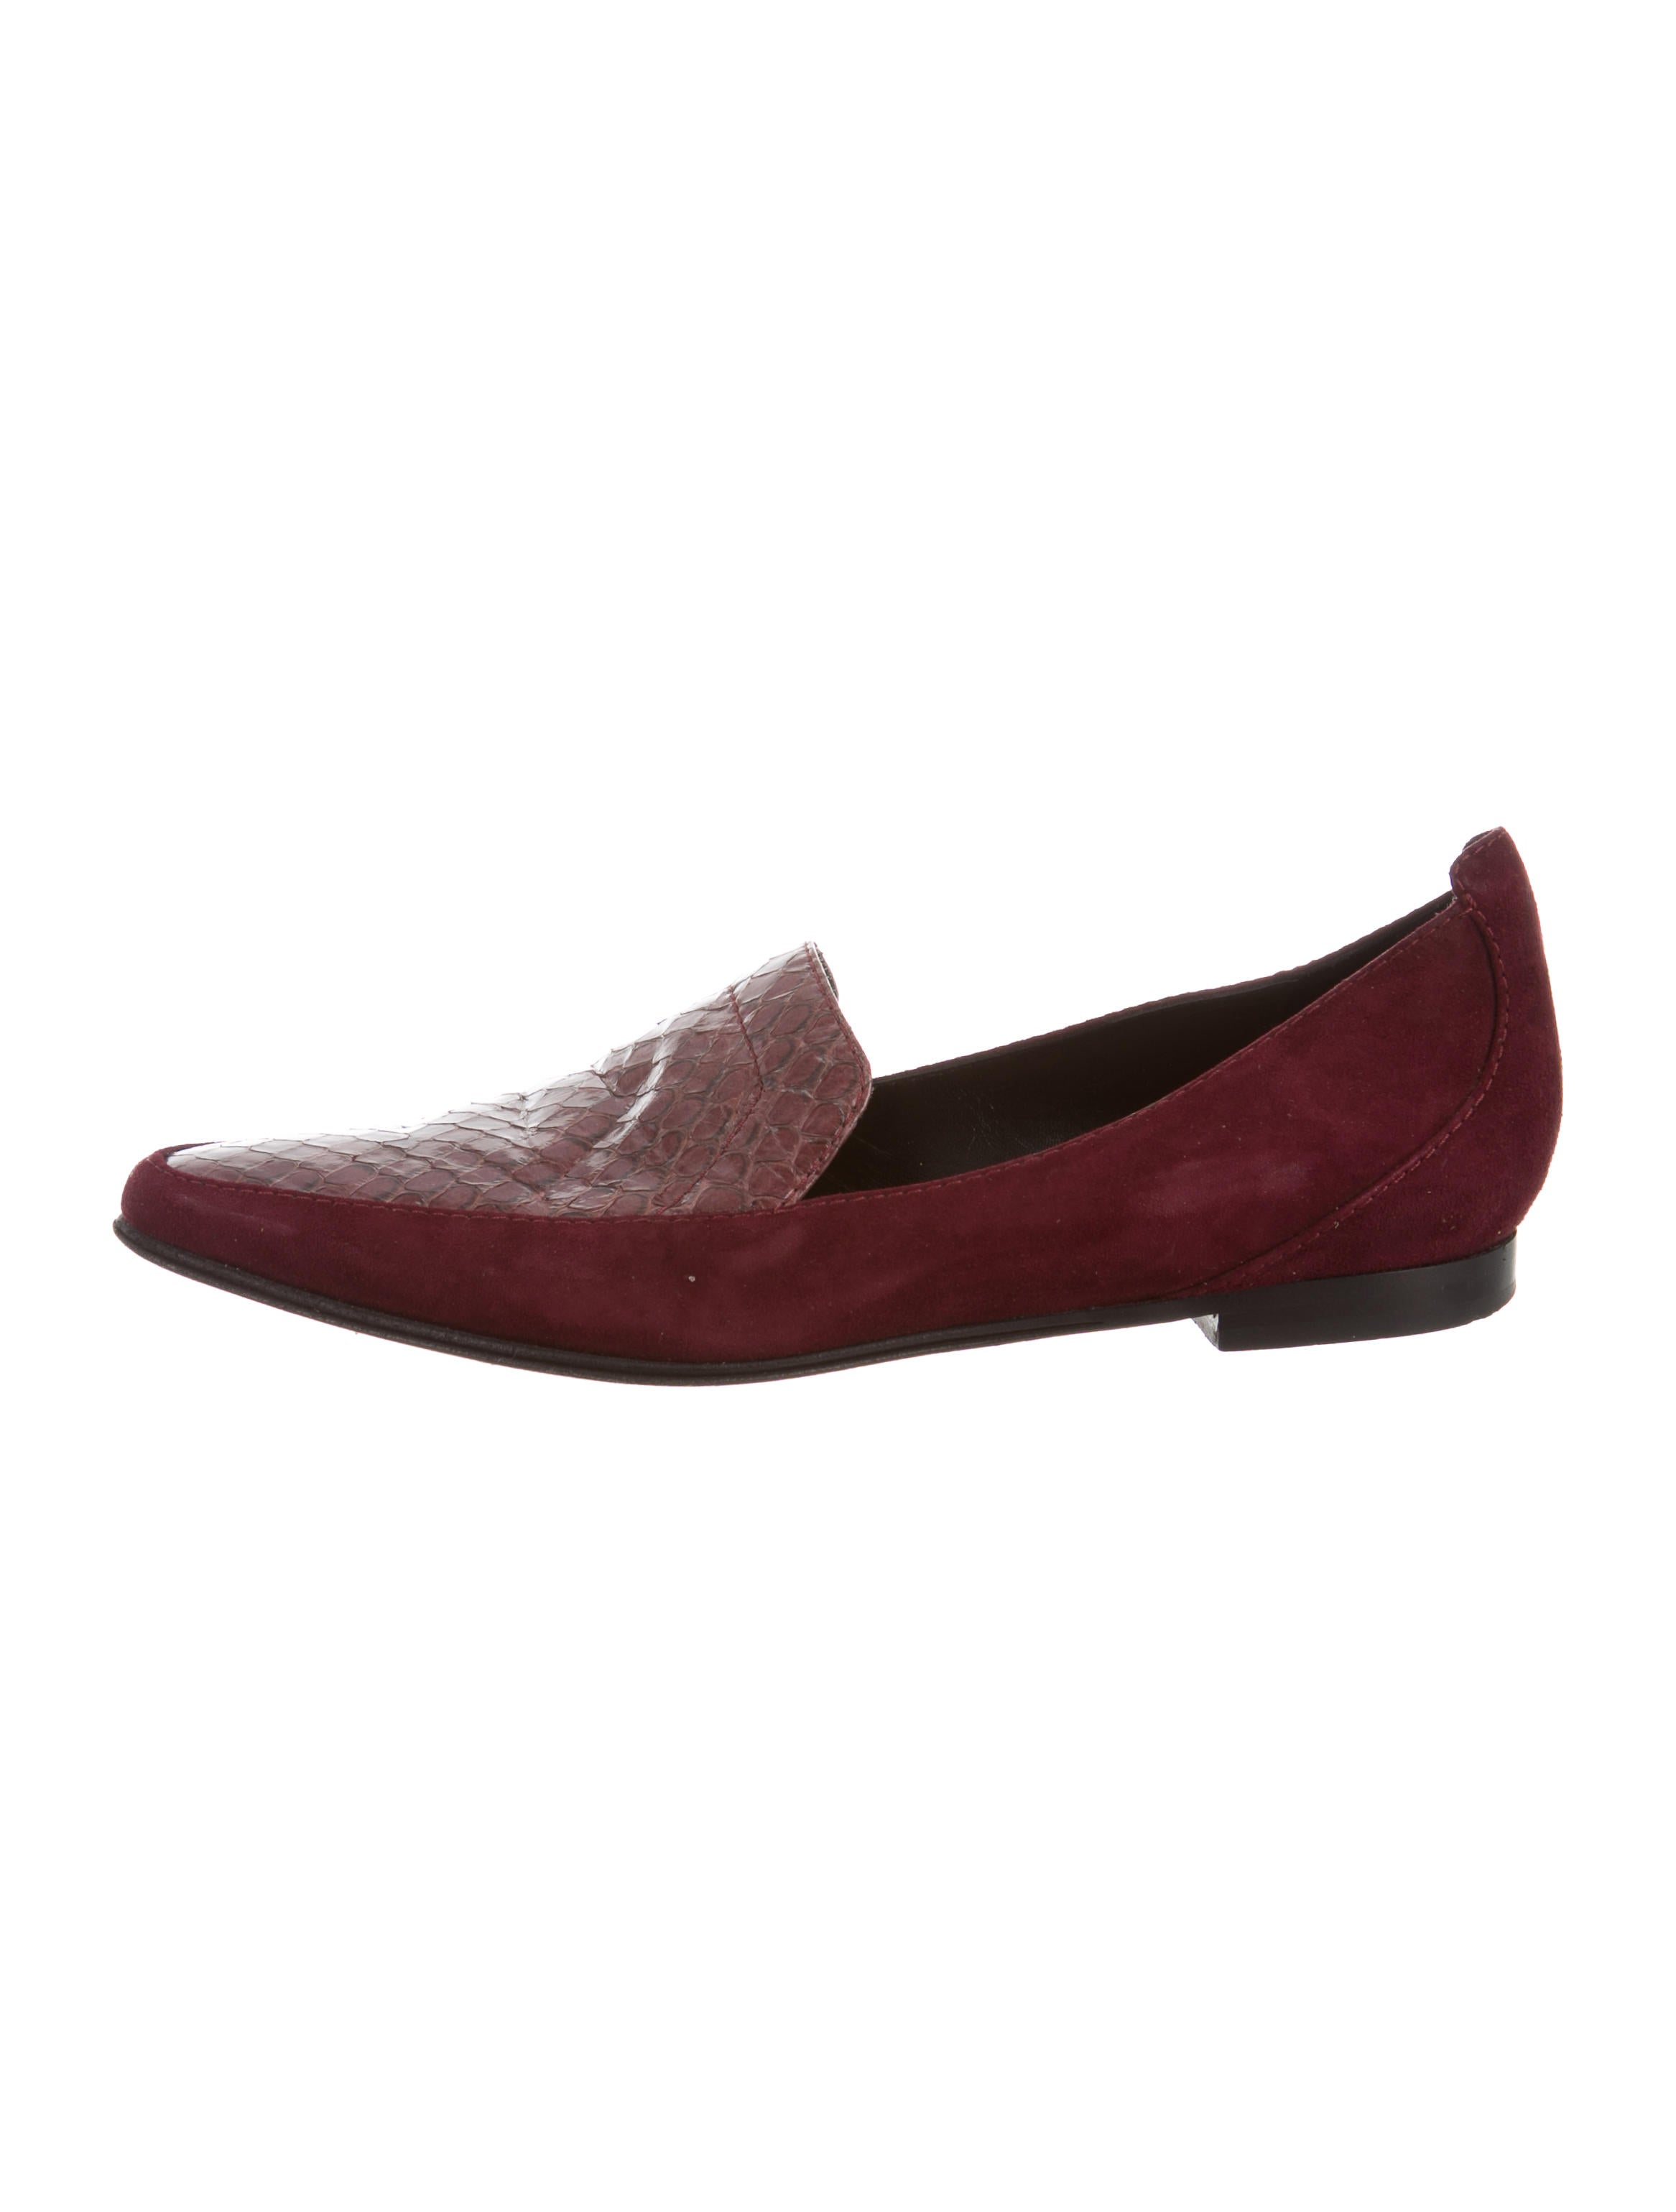 Derek Lam Snakeskin-Accented Pointed-Toe Loafers classic online E7HUu00N